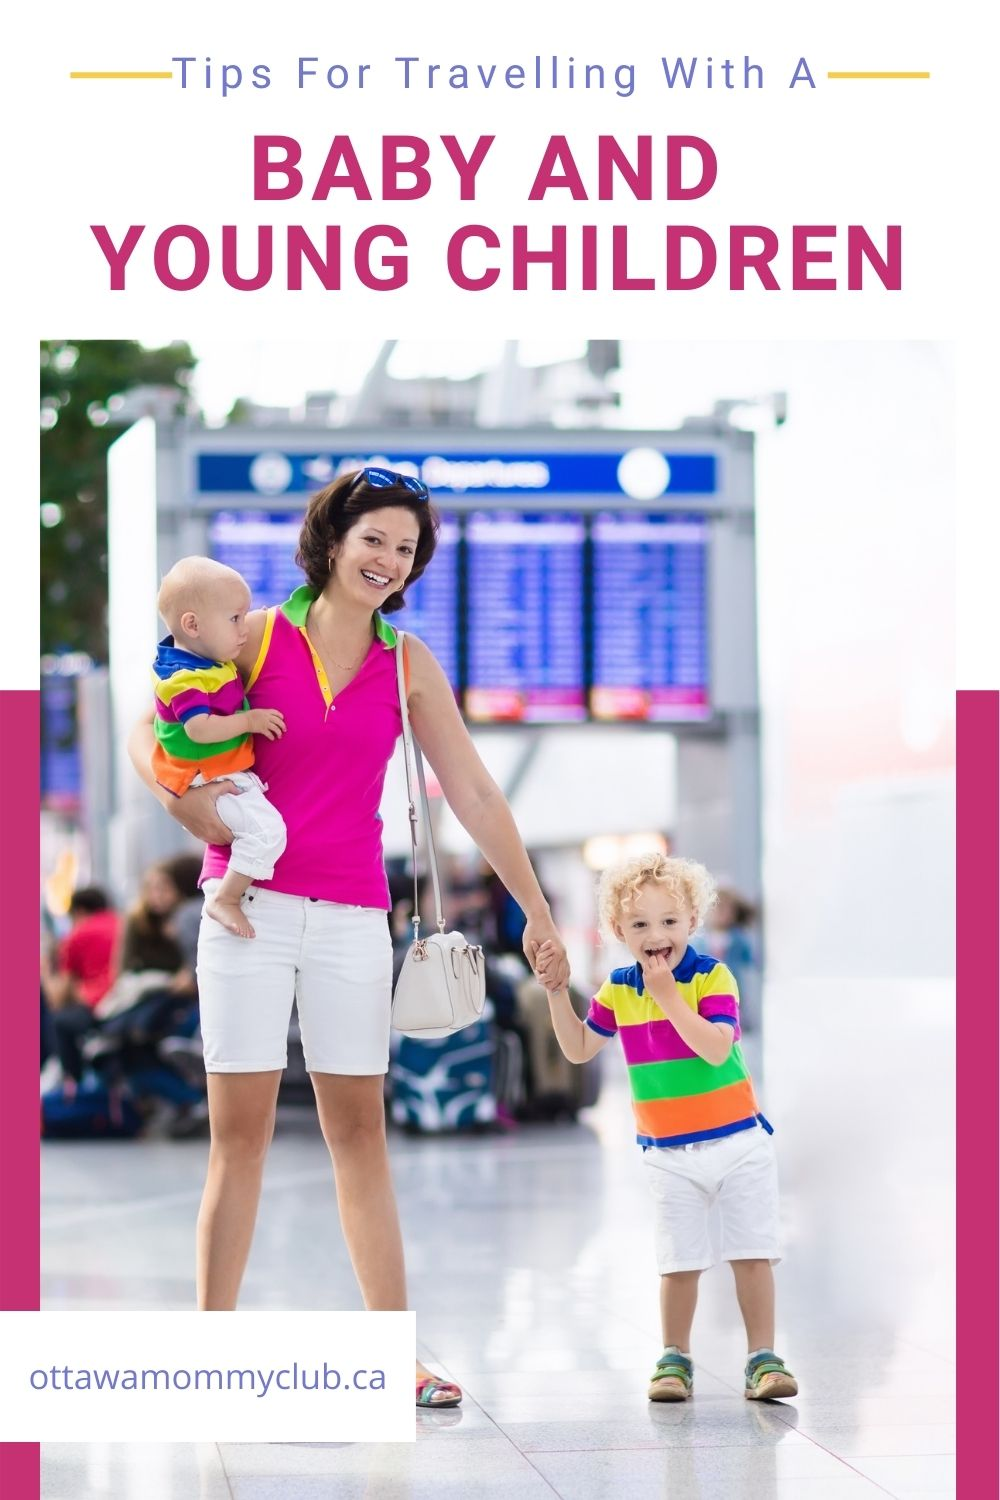 Tips For Travelling With A Baby and Young Children